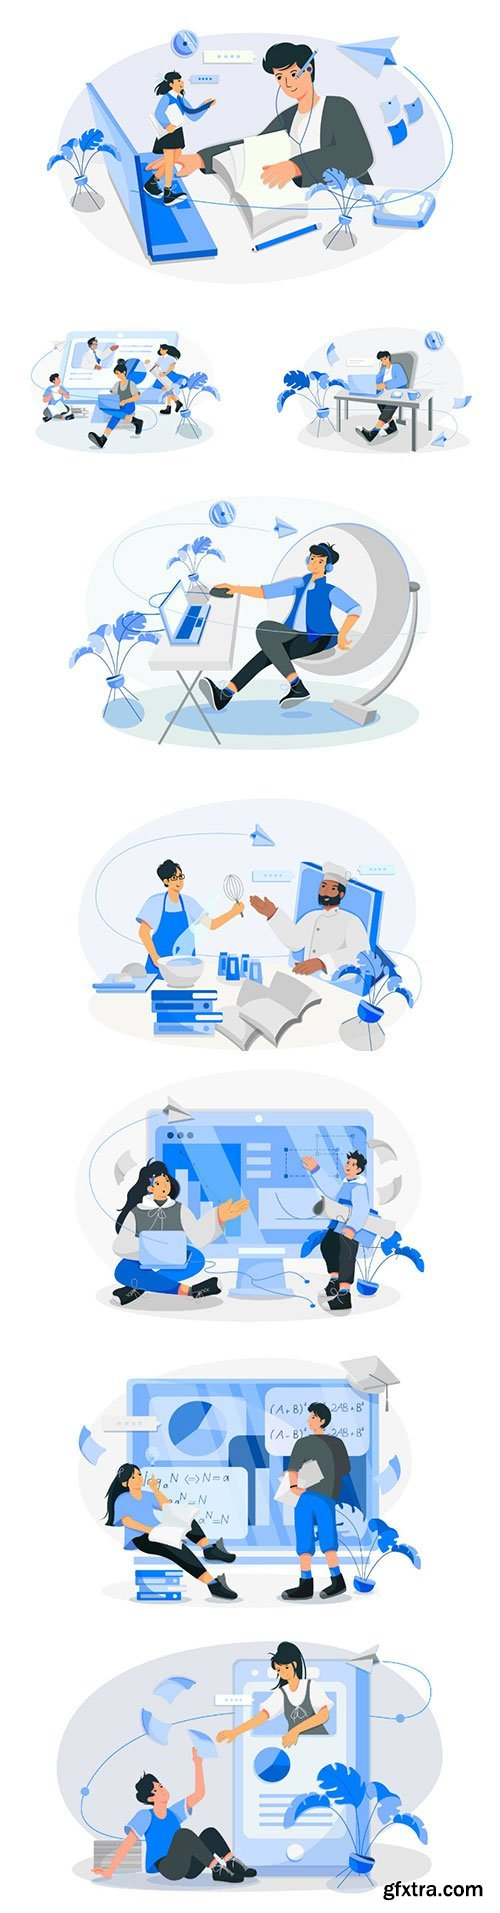 Online course with people vector illustrations